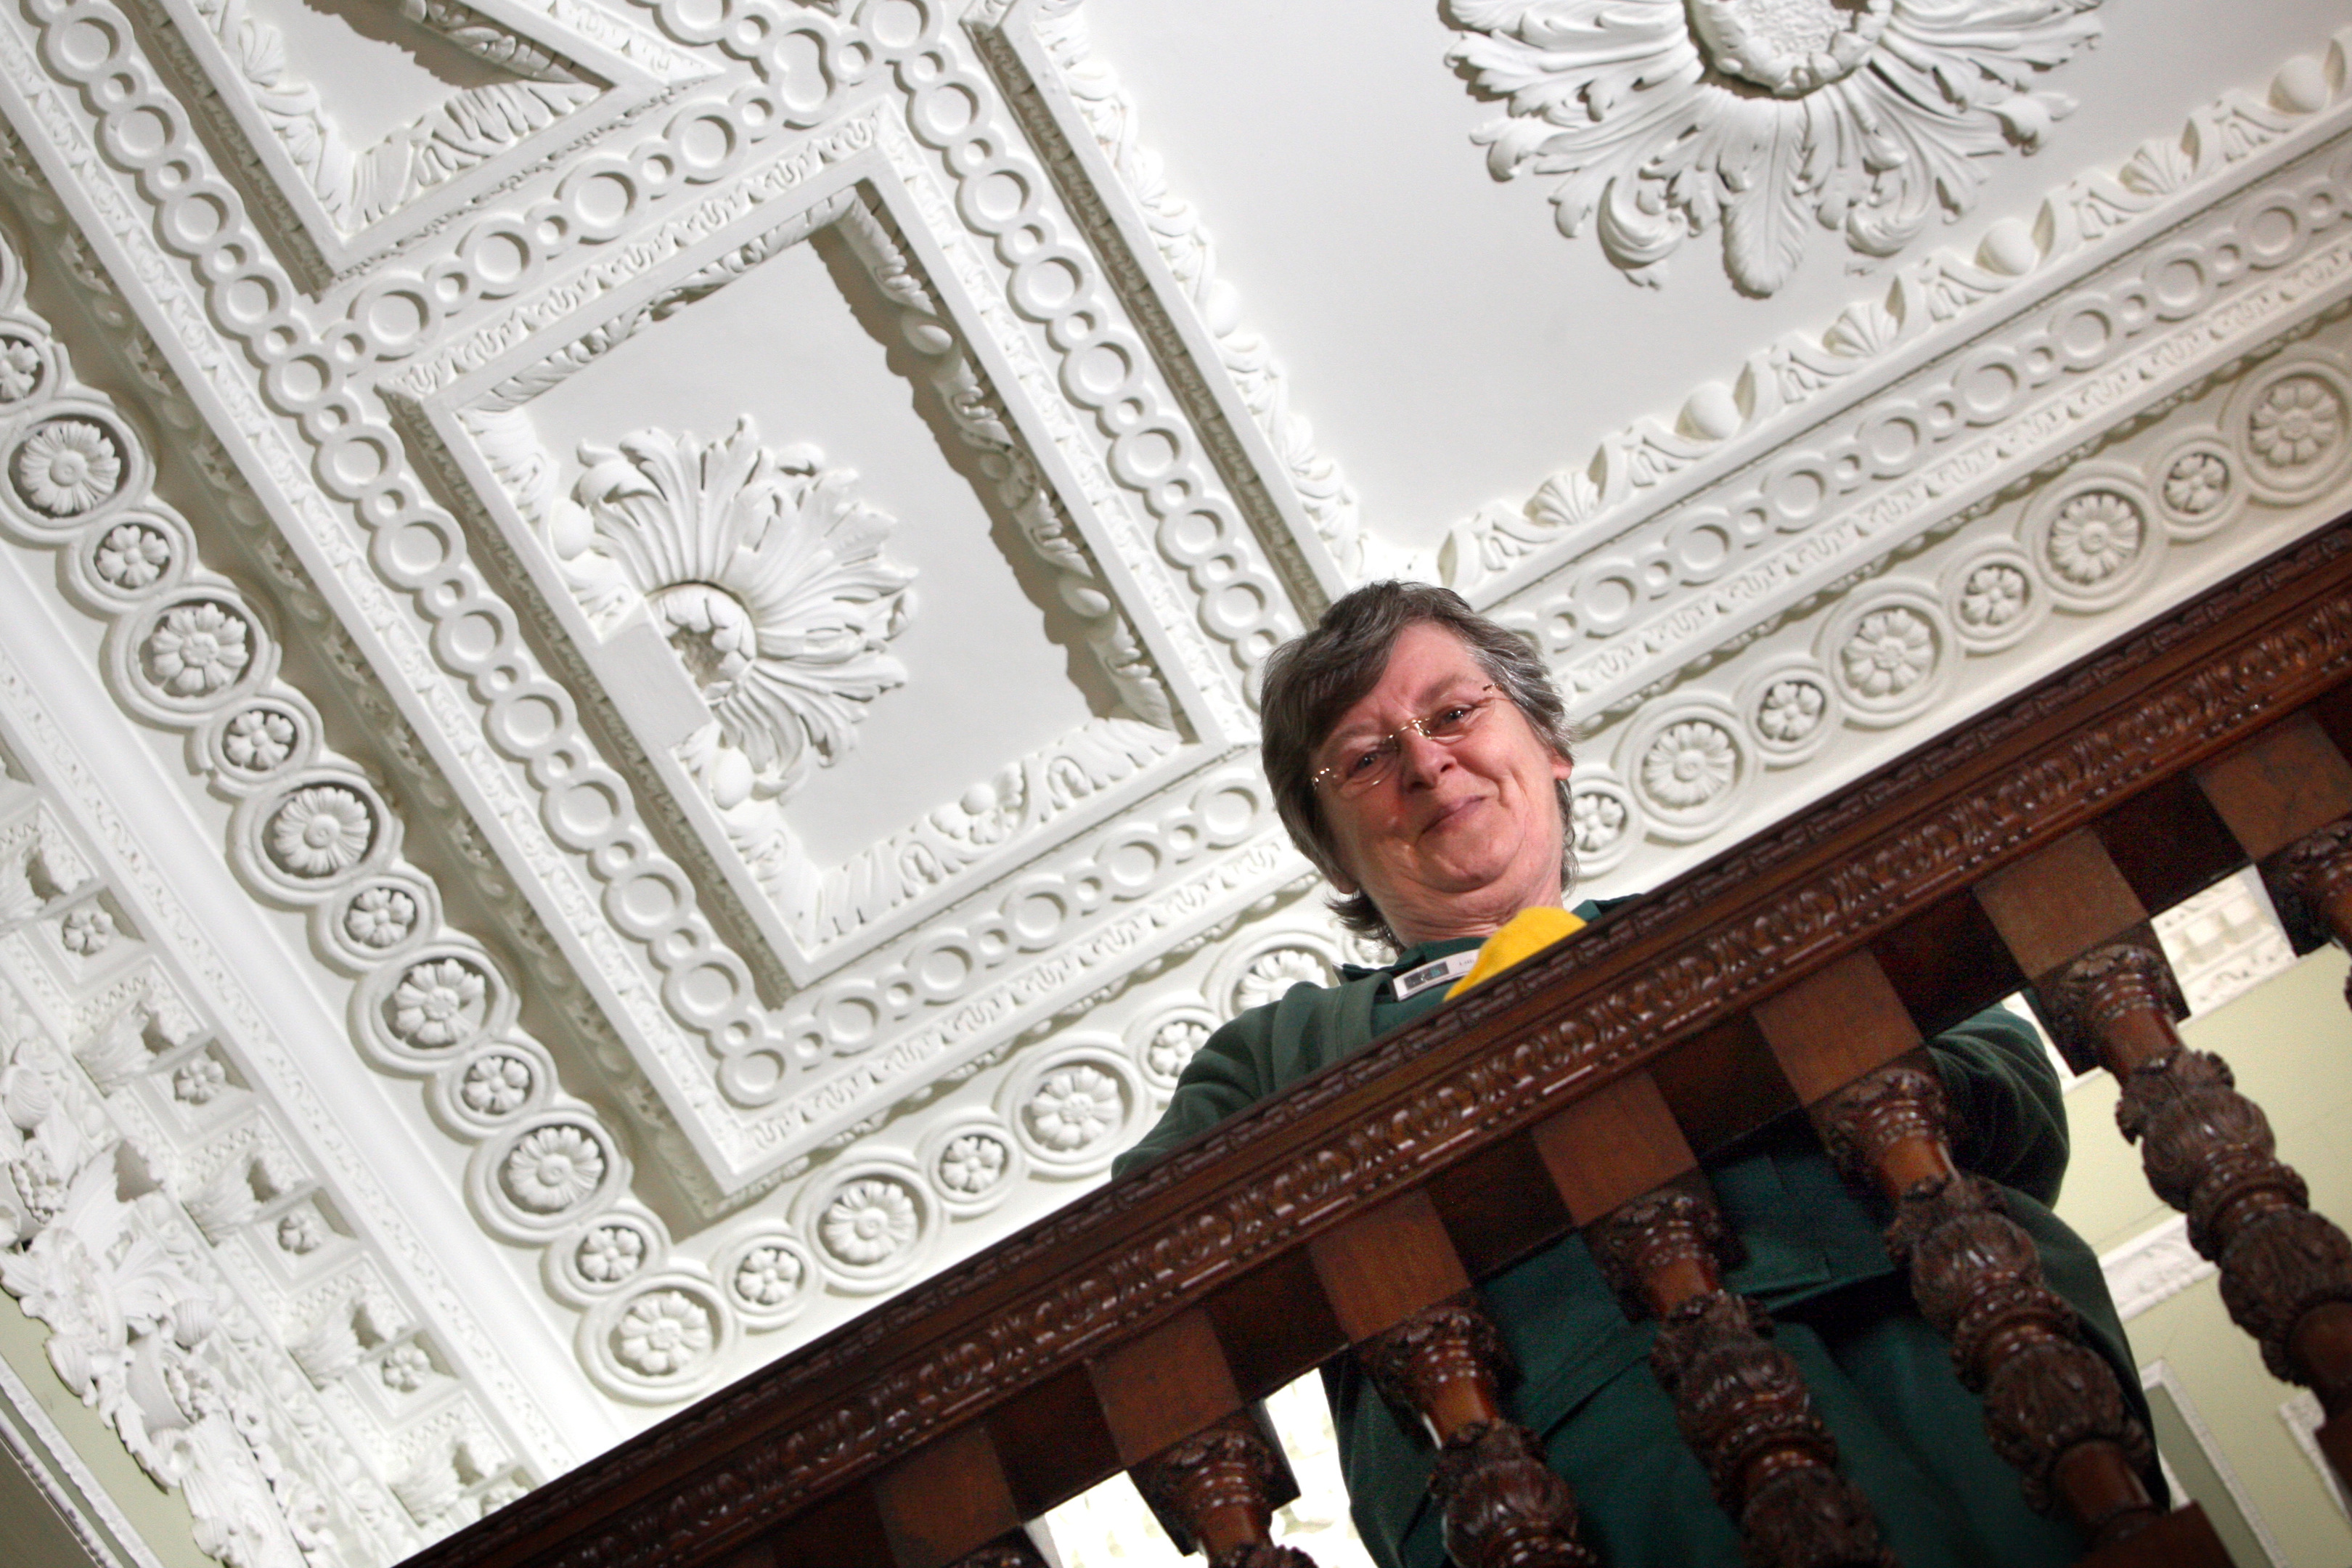 Lillian Lamond from the house keeping team with the Syrian-inspired front stair ceiling cornice and plaster work behind her.